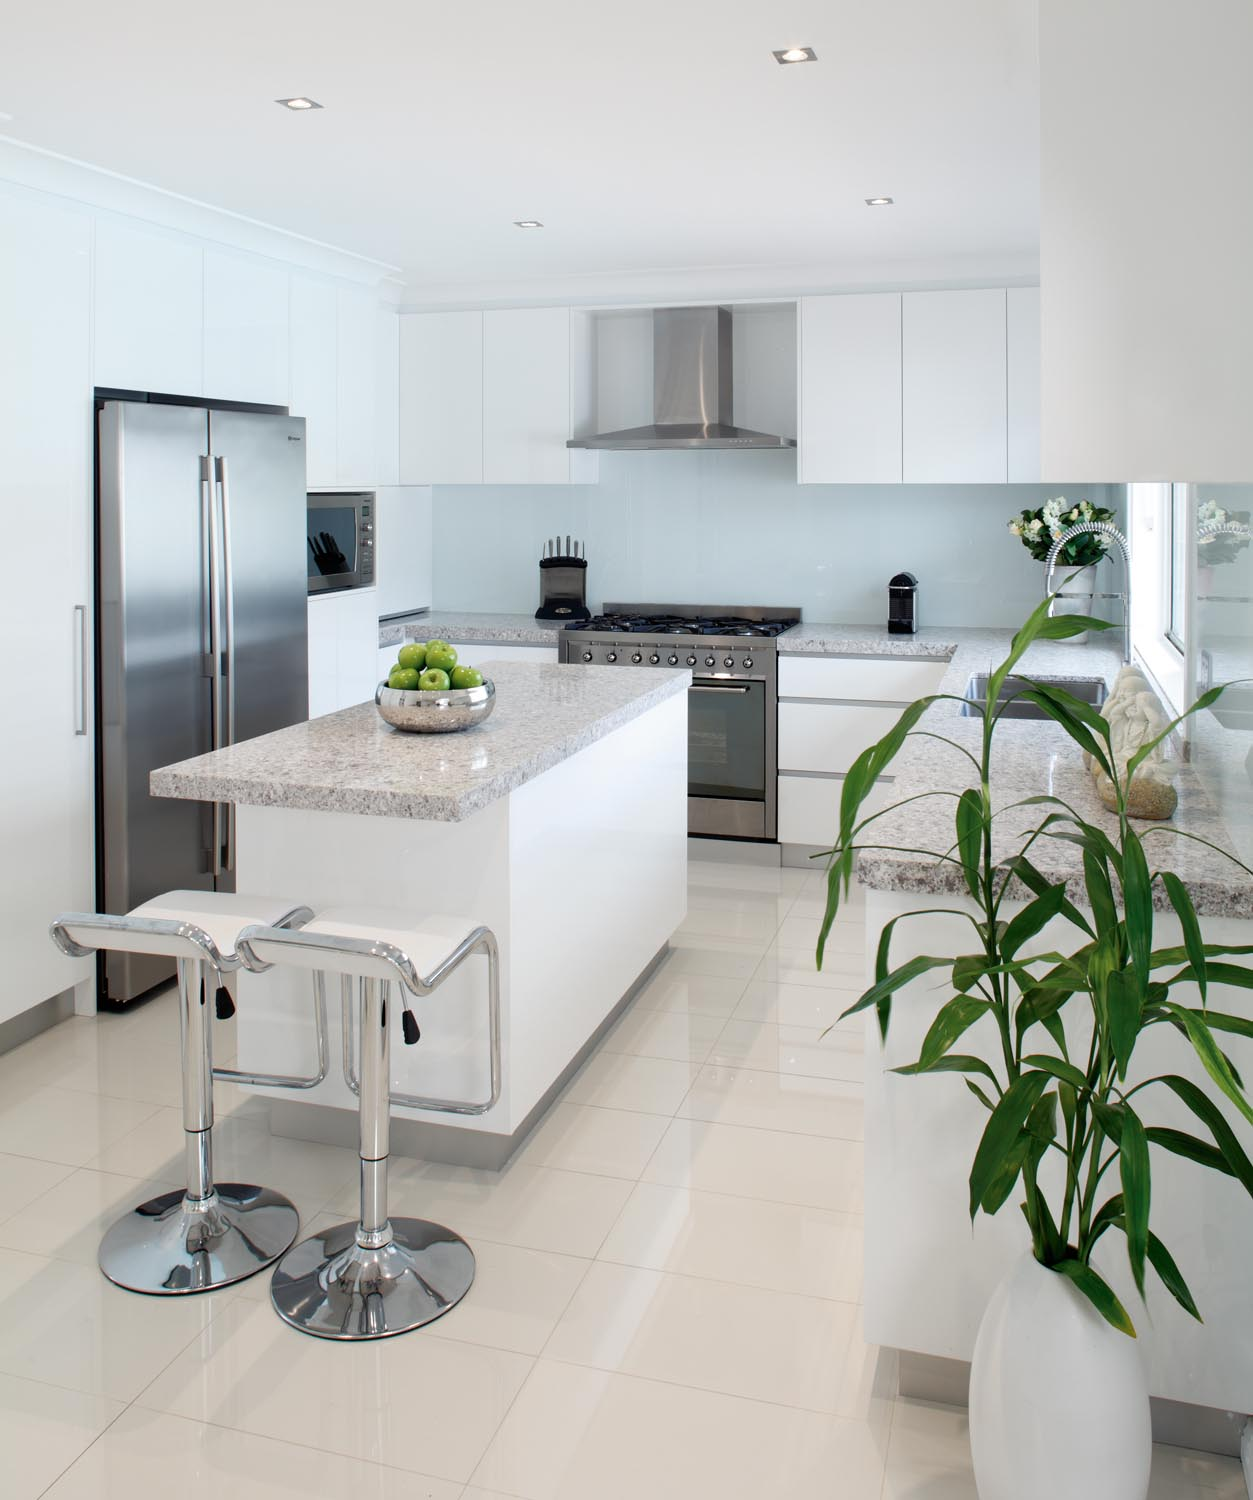 A sophisticated and timeless kitchen facelift